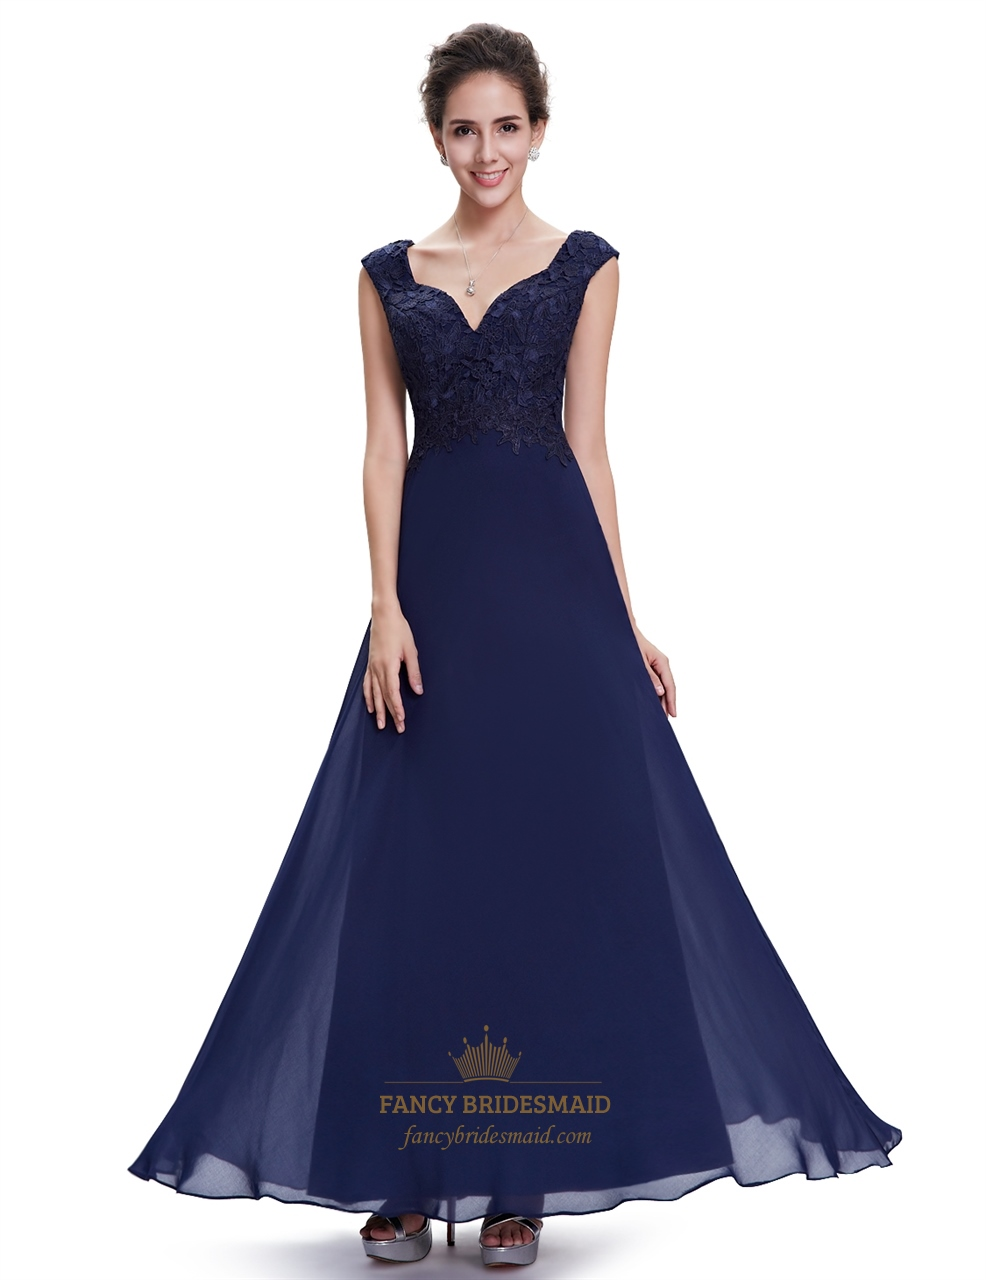 Navy blue cap sleeves chiffon long bridesmaid dresses with lace navy blue cap sleeves chiffon long bridesmaid dresses with lace bodice ombrellifo Gallery